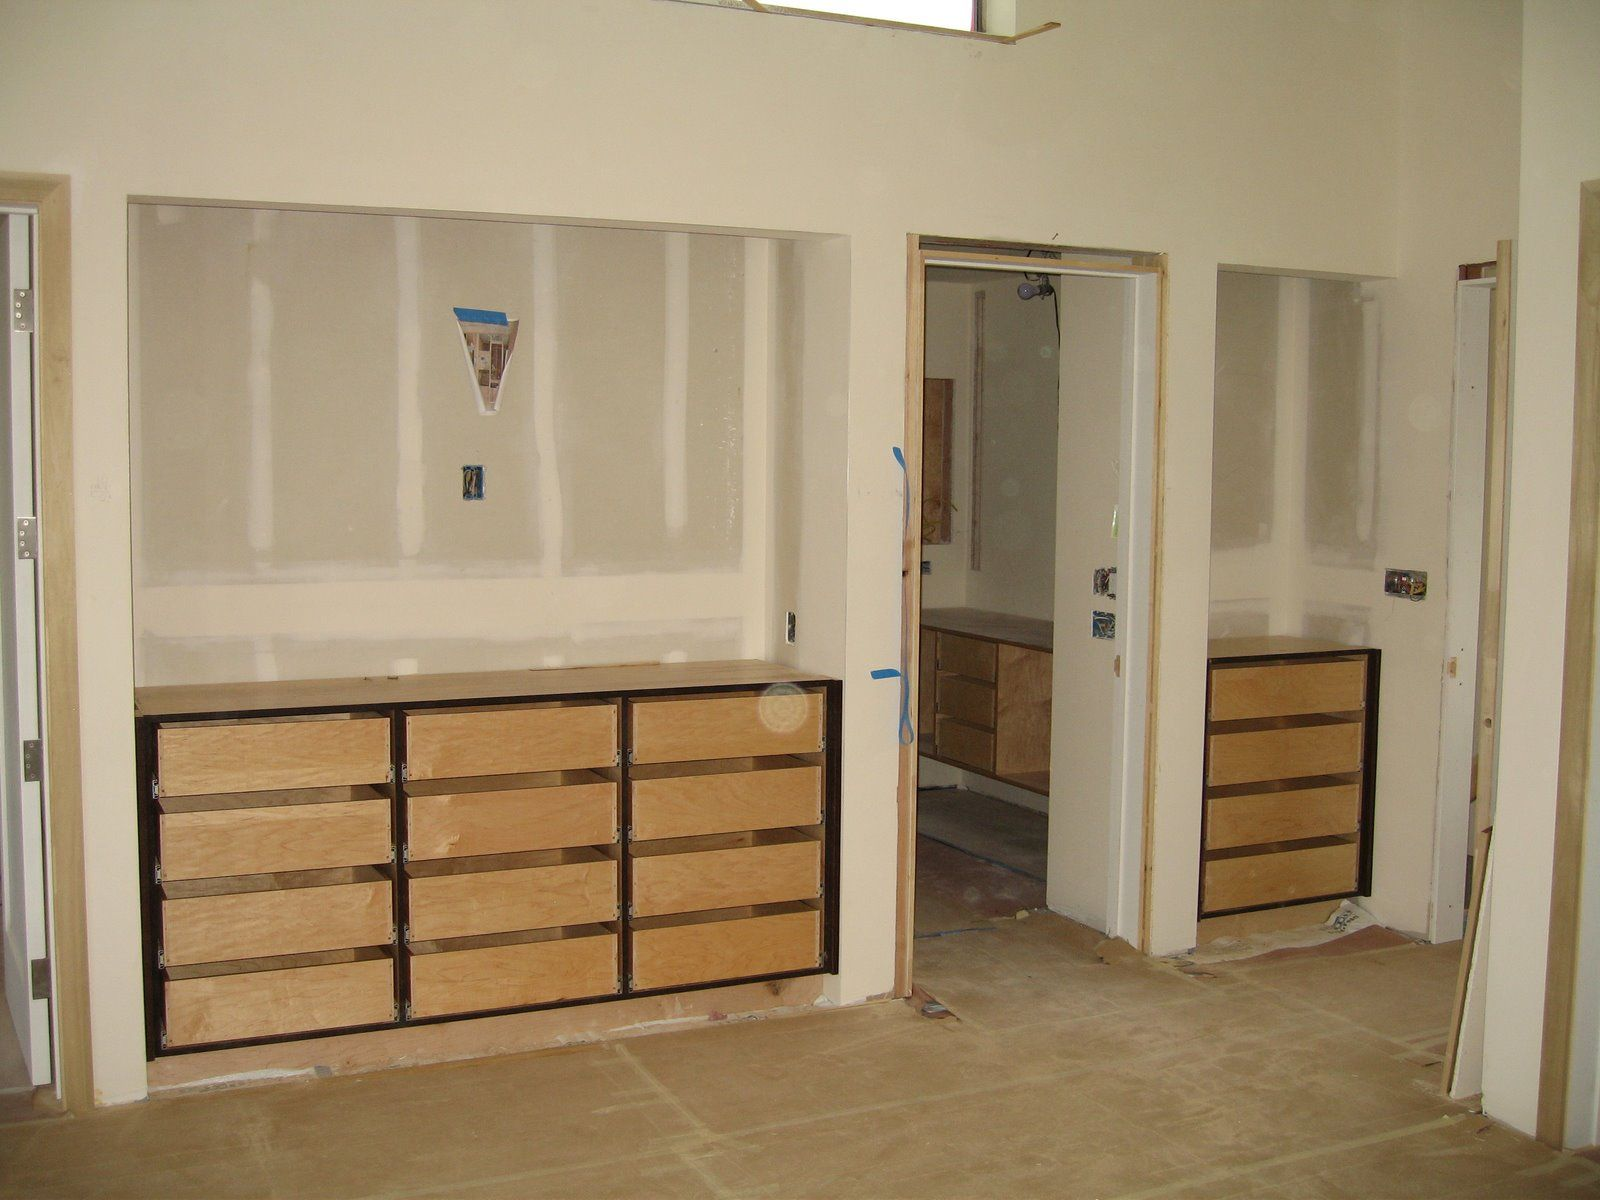 Cabinet Design For Bedroom Optional Built Ins For Tonys Closet At Raised Dresser Height  C C